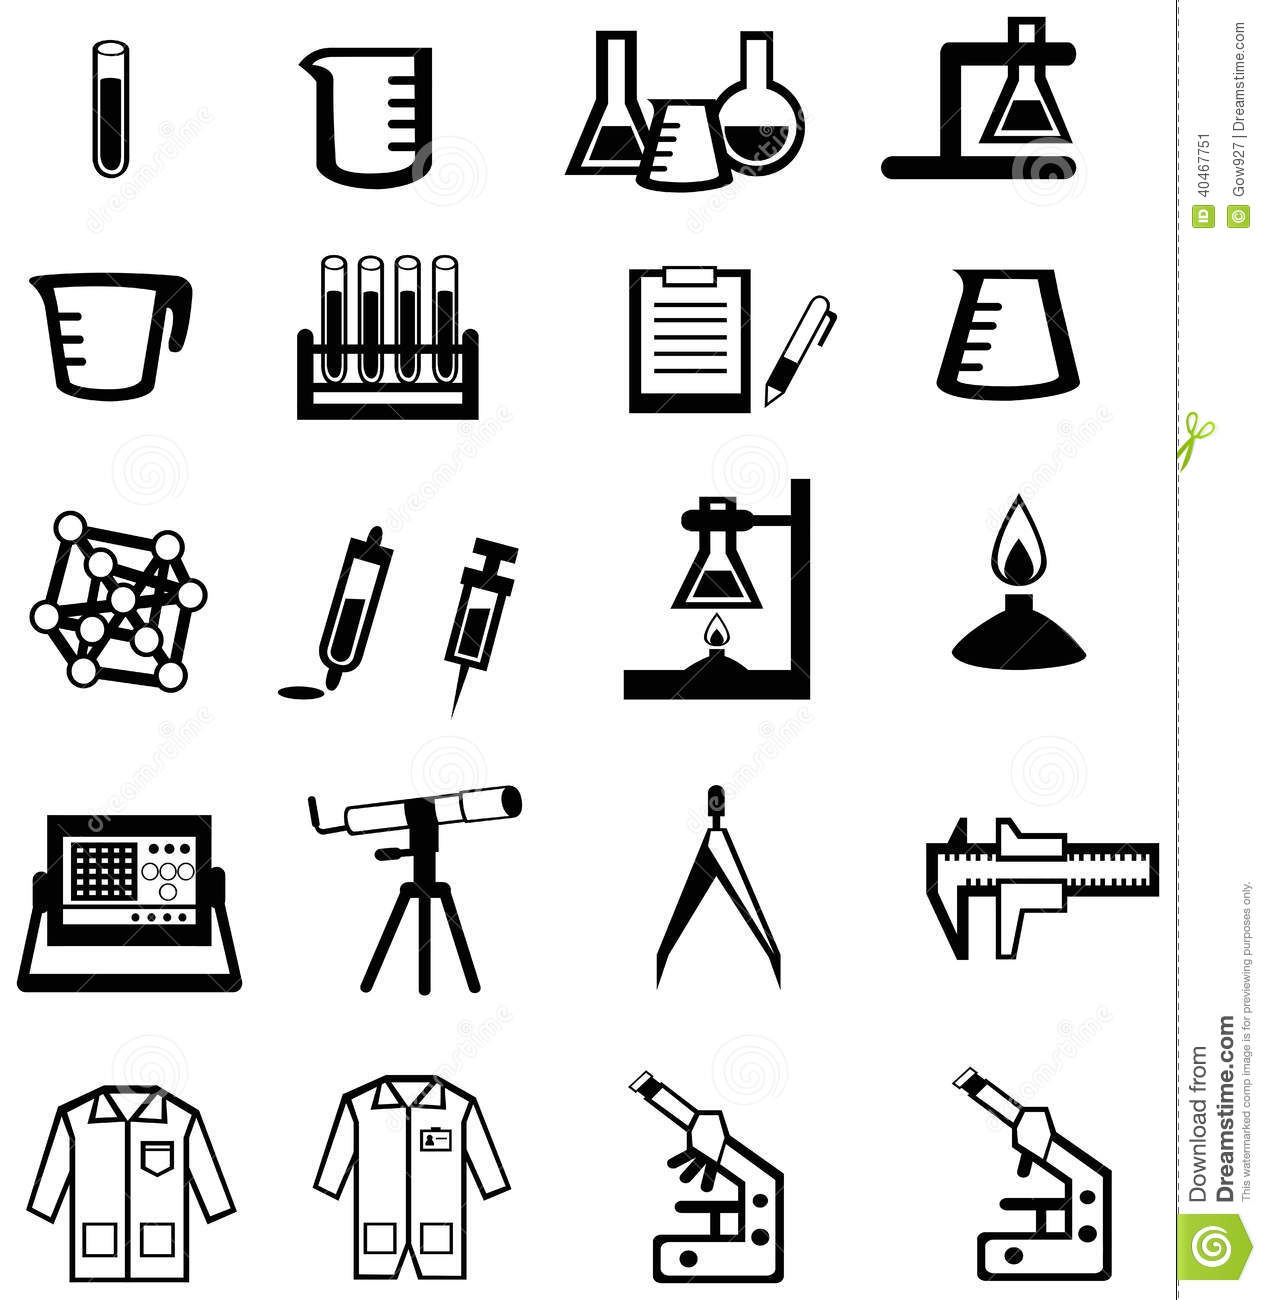 Science clipart silhouette #5